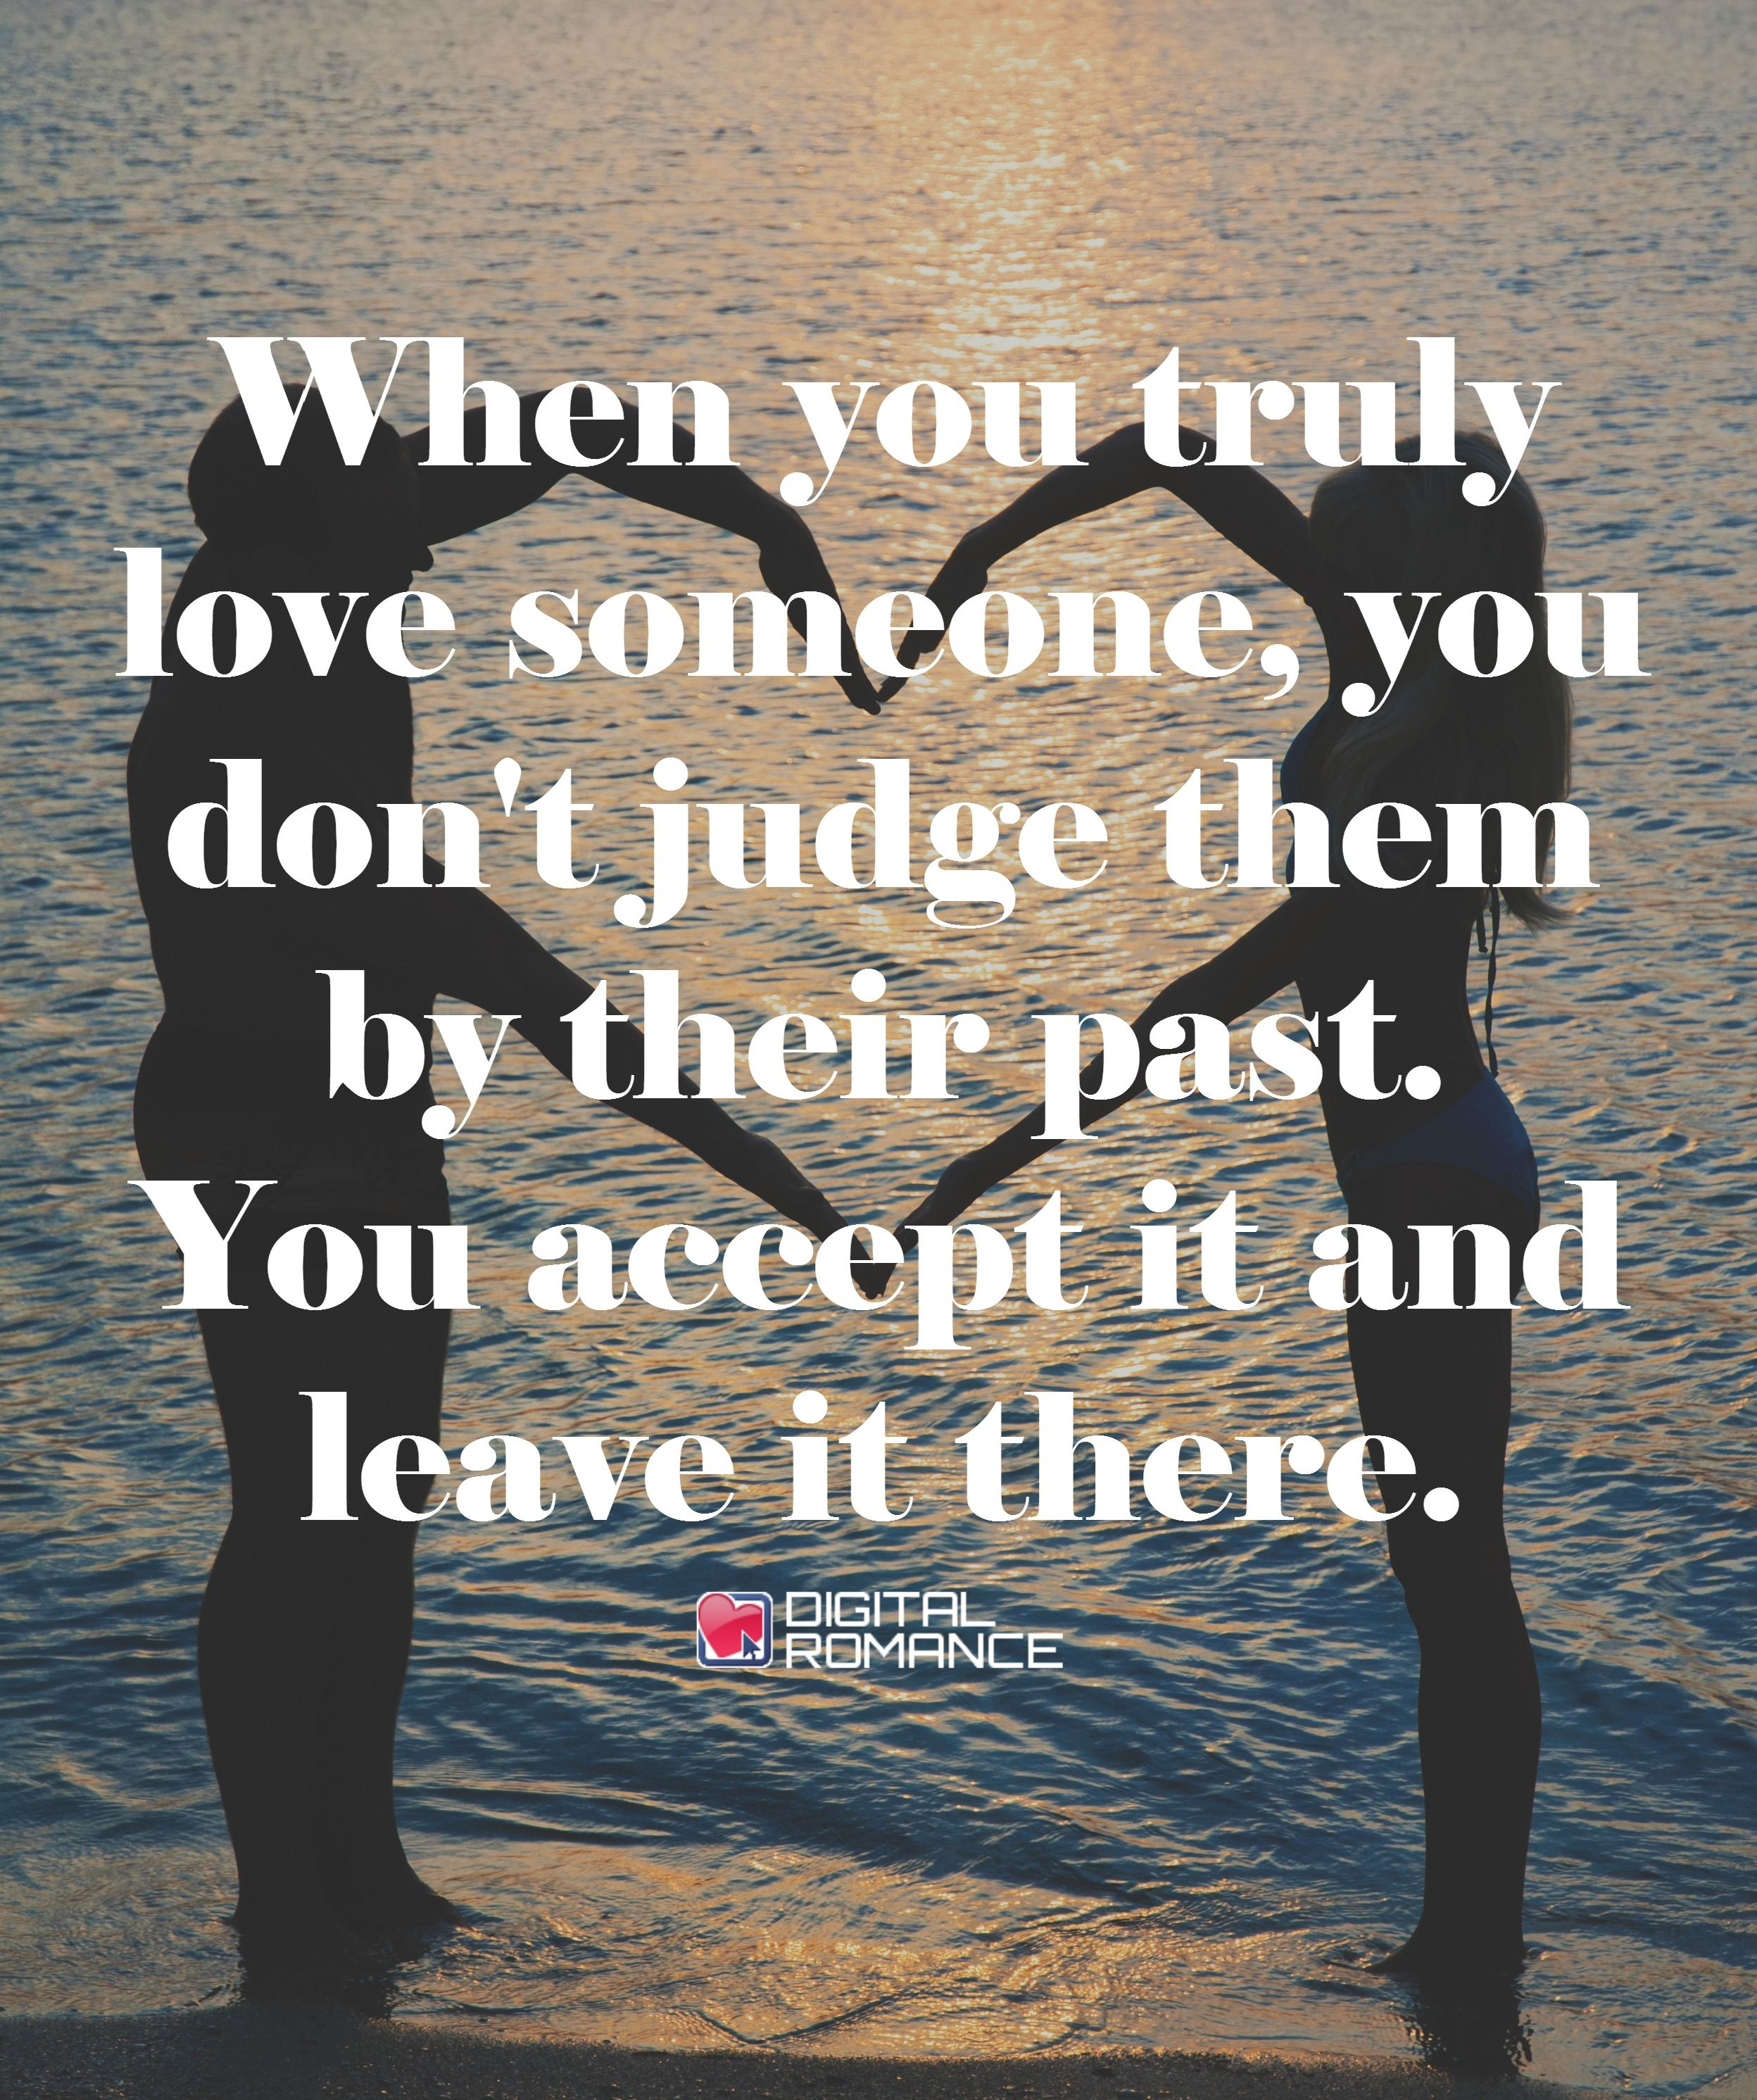 Quotes Leaving Someone You Love: When You Truly Love Someone, You Don't Judge Them By Their